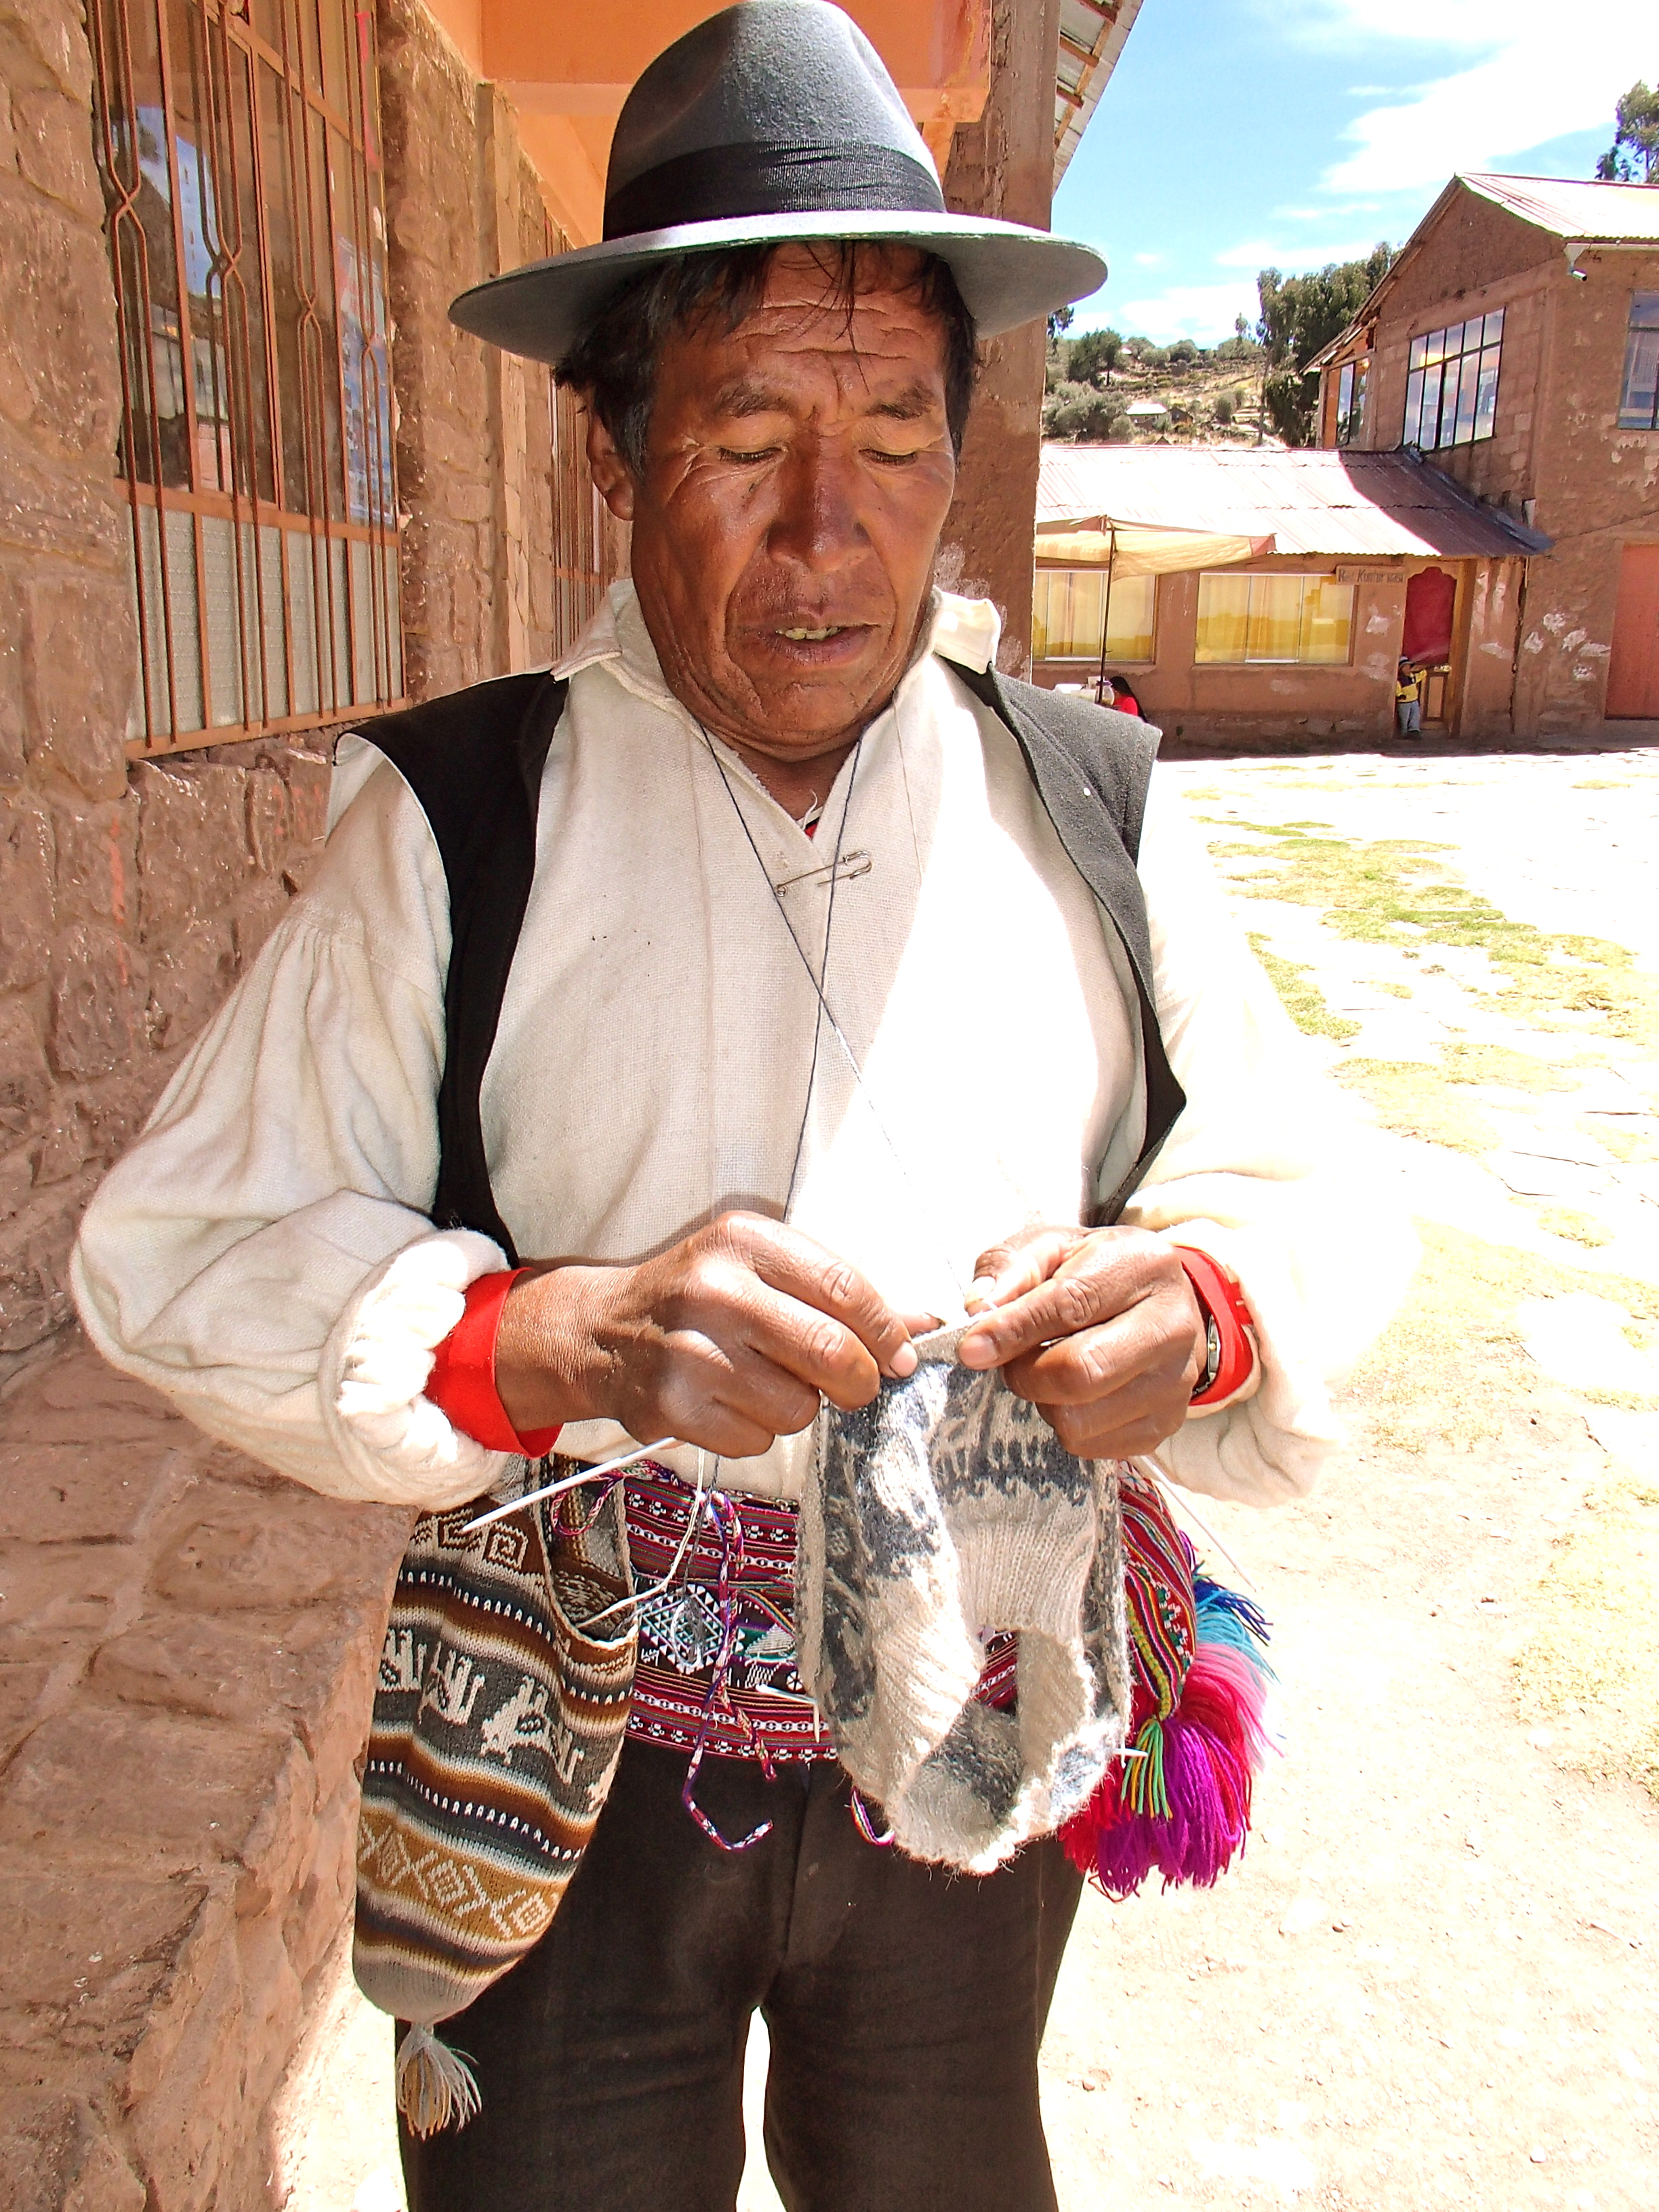 incan people of peru inca culture in peru travel blog places to visit in peru